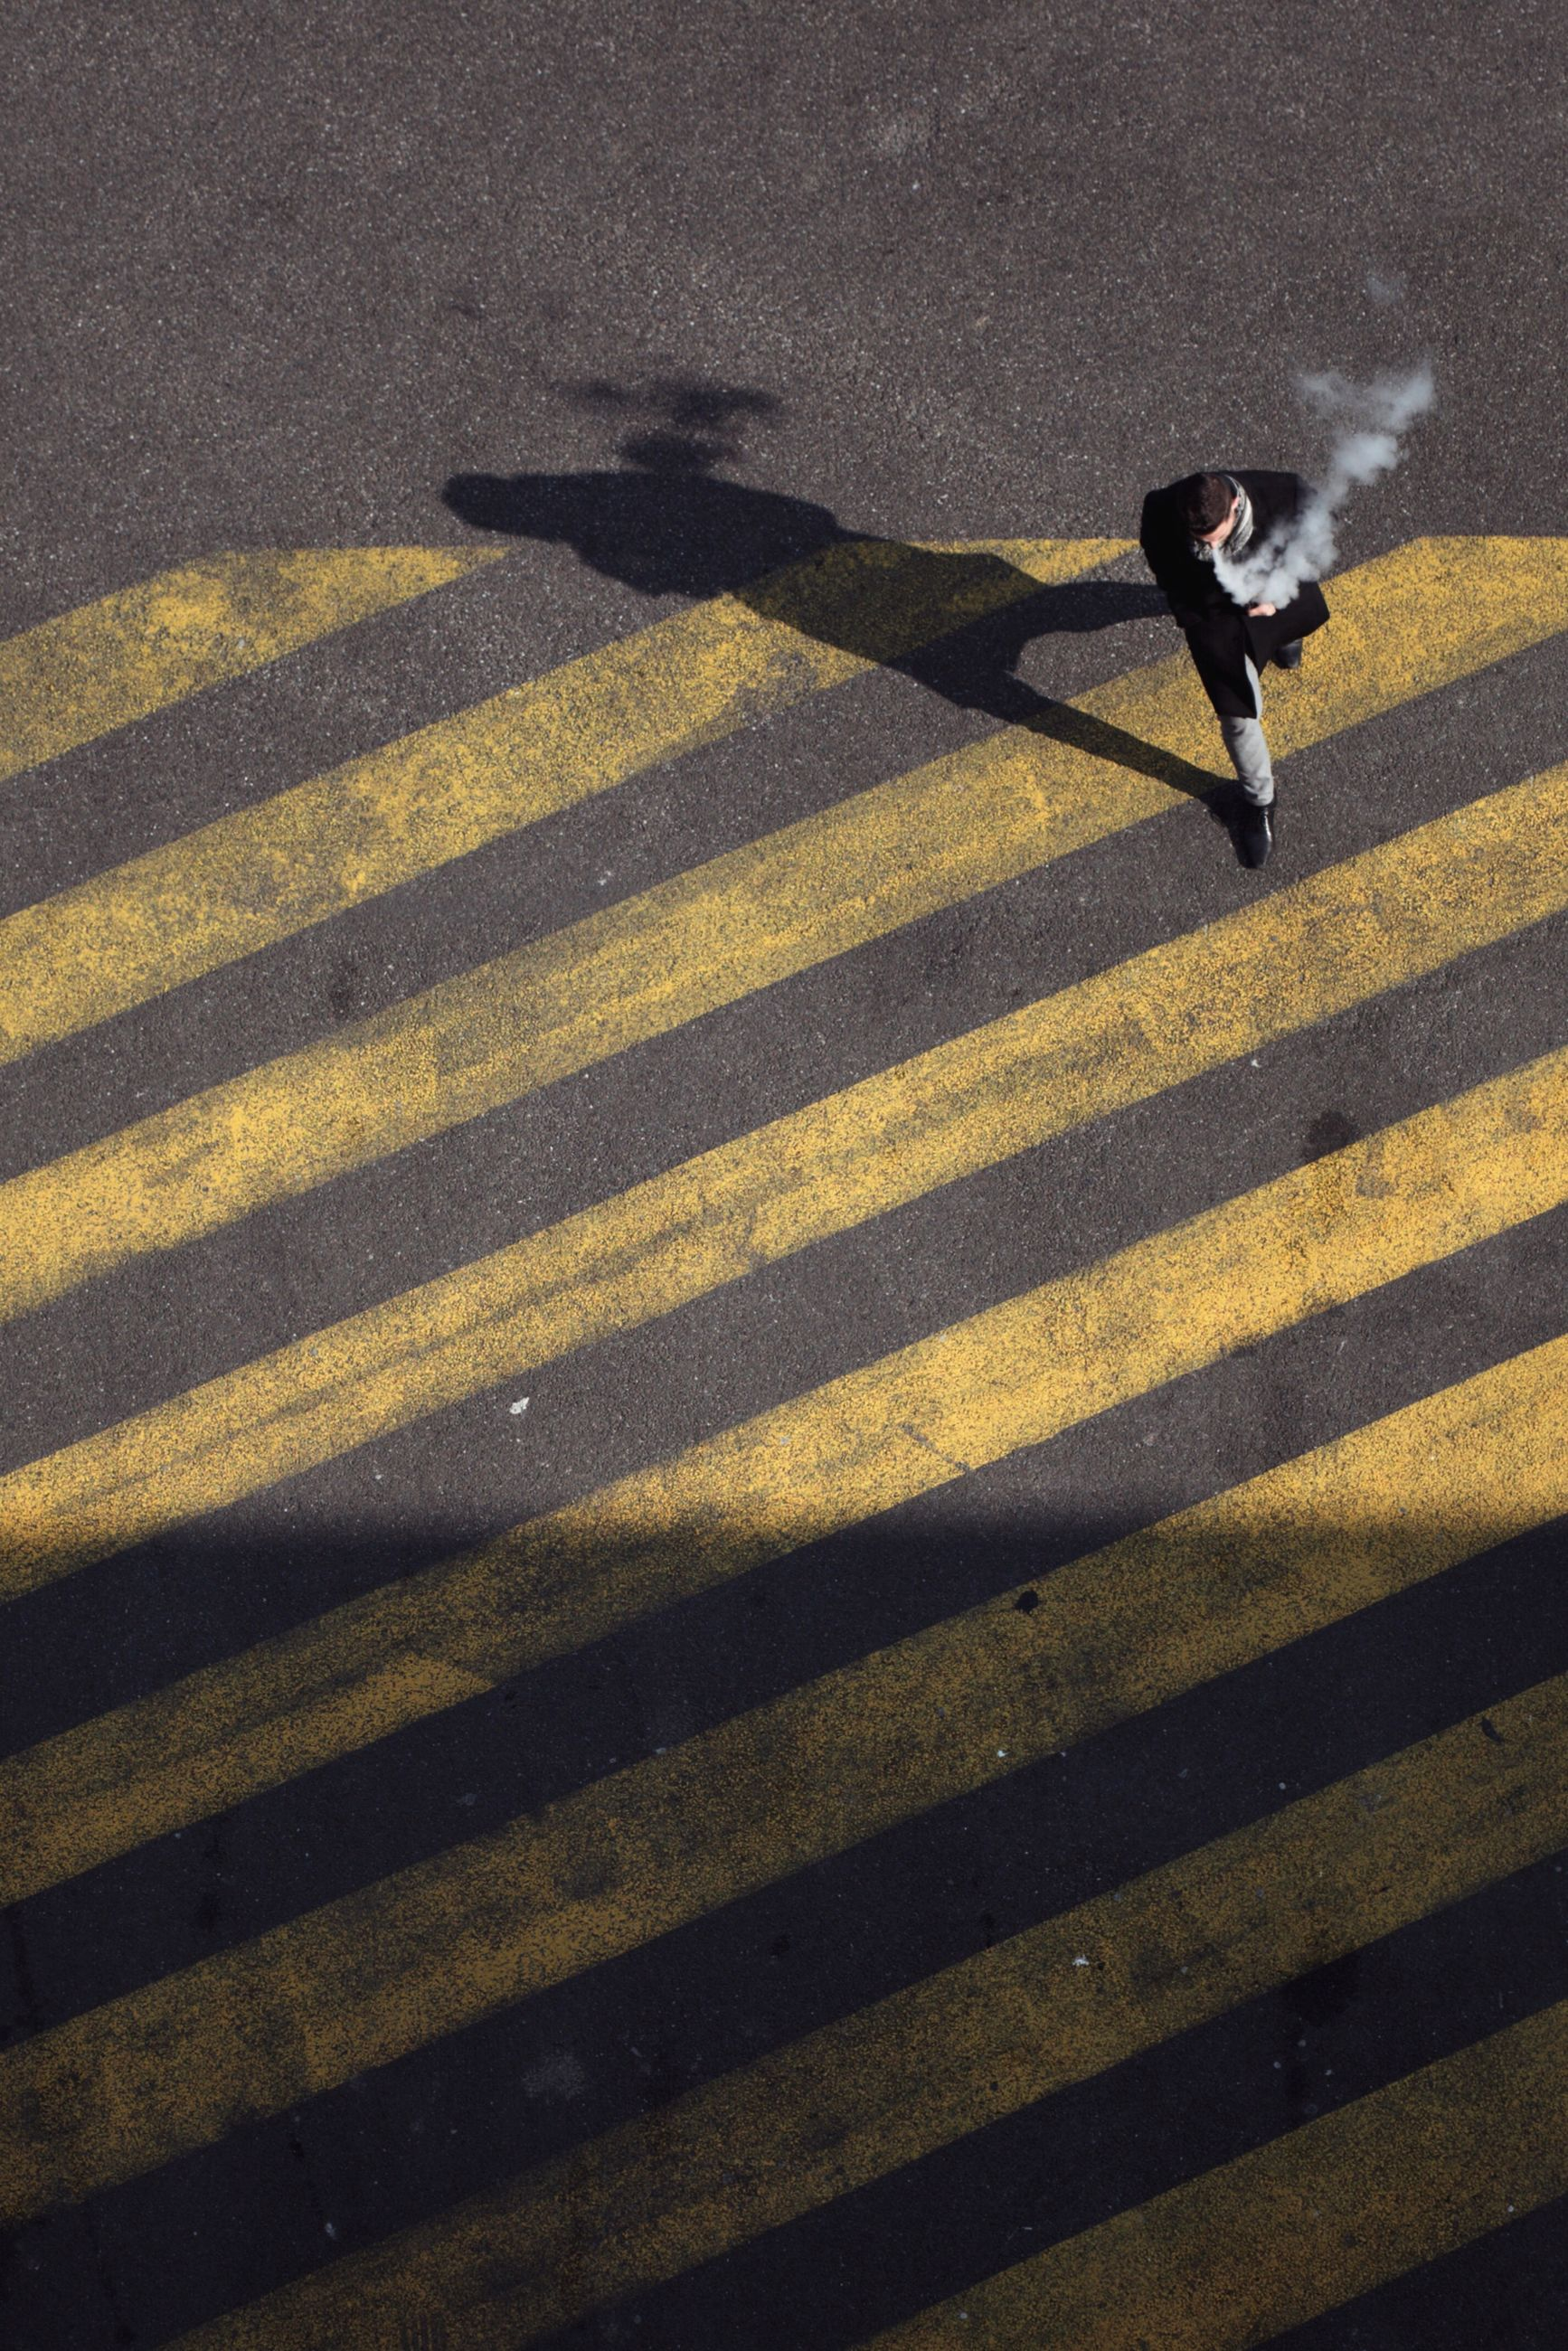 shadow, one person, full length, road, city, nature, sunlight, transportation, street, sign, motion, high angle view, day, road marking, yellow, outdoors, real people, adult, lifestyles, focus on shadow